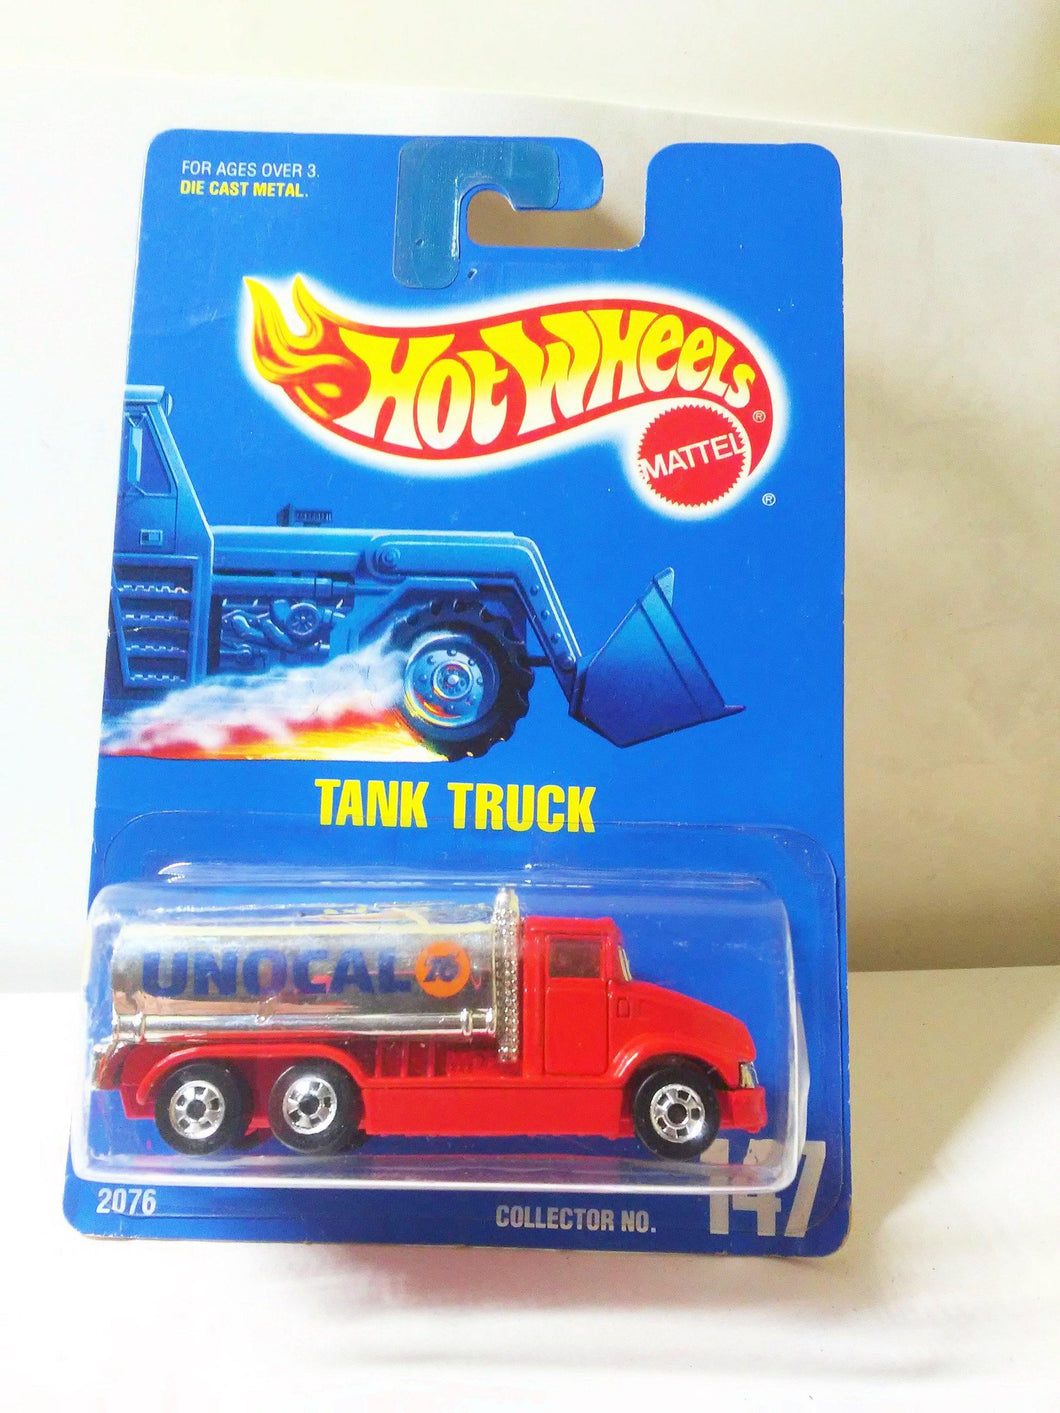 Hot Wheels Collector #147 Unocal 76 Tank Truck Vintage Diecast Toy 1992